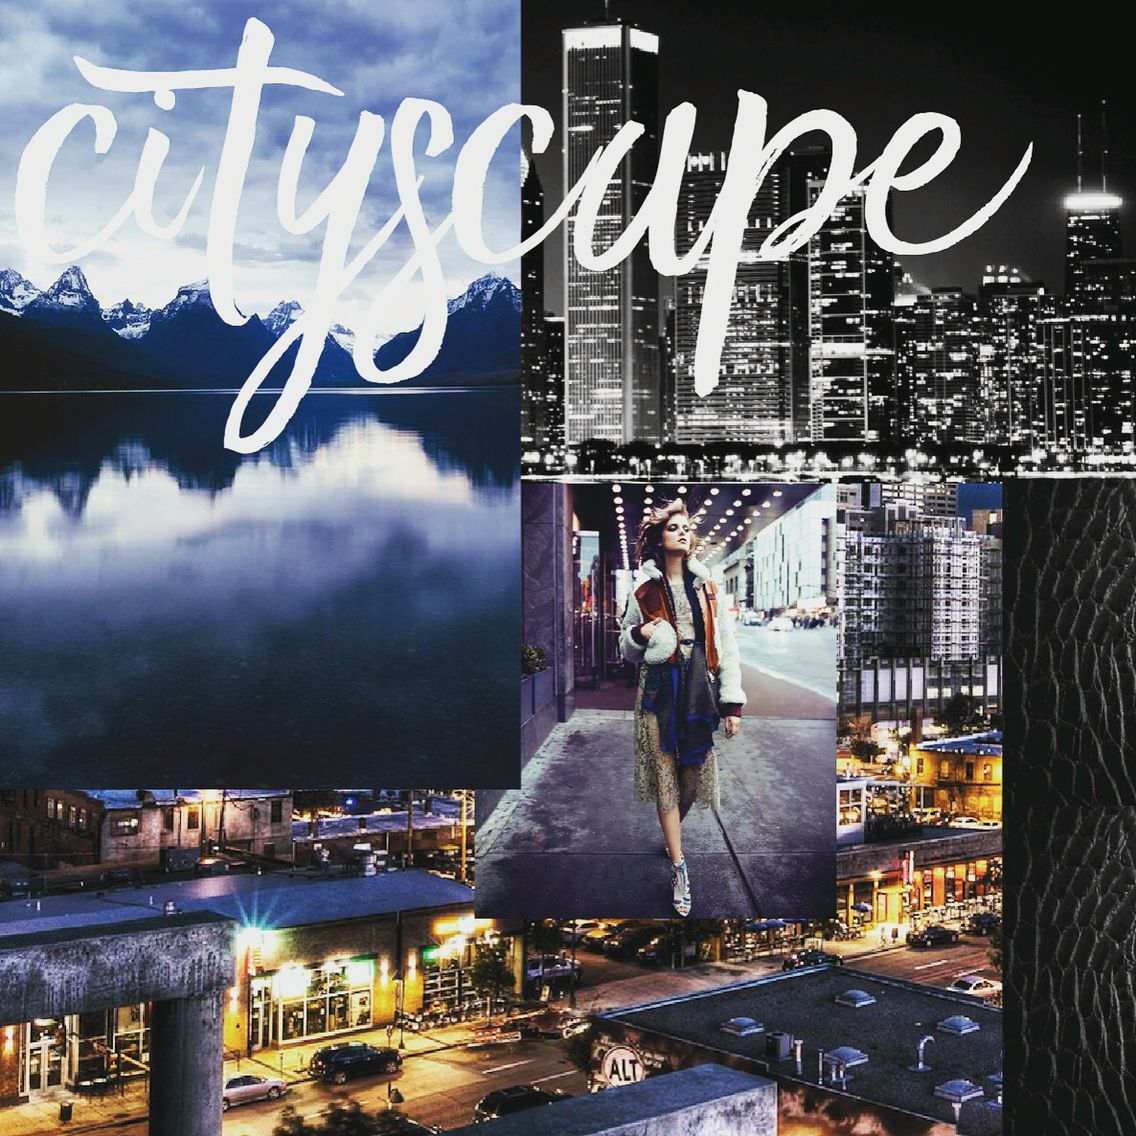 Introducing #Cityscape-brought back from the streets of #denver where the #nightlife and #mountains collide. #fall #theme #comingsoon #july #city #style #toniadebellis